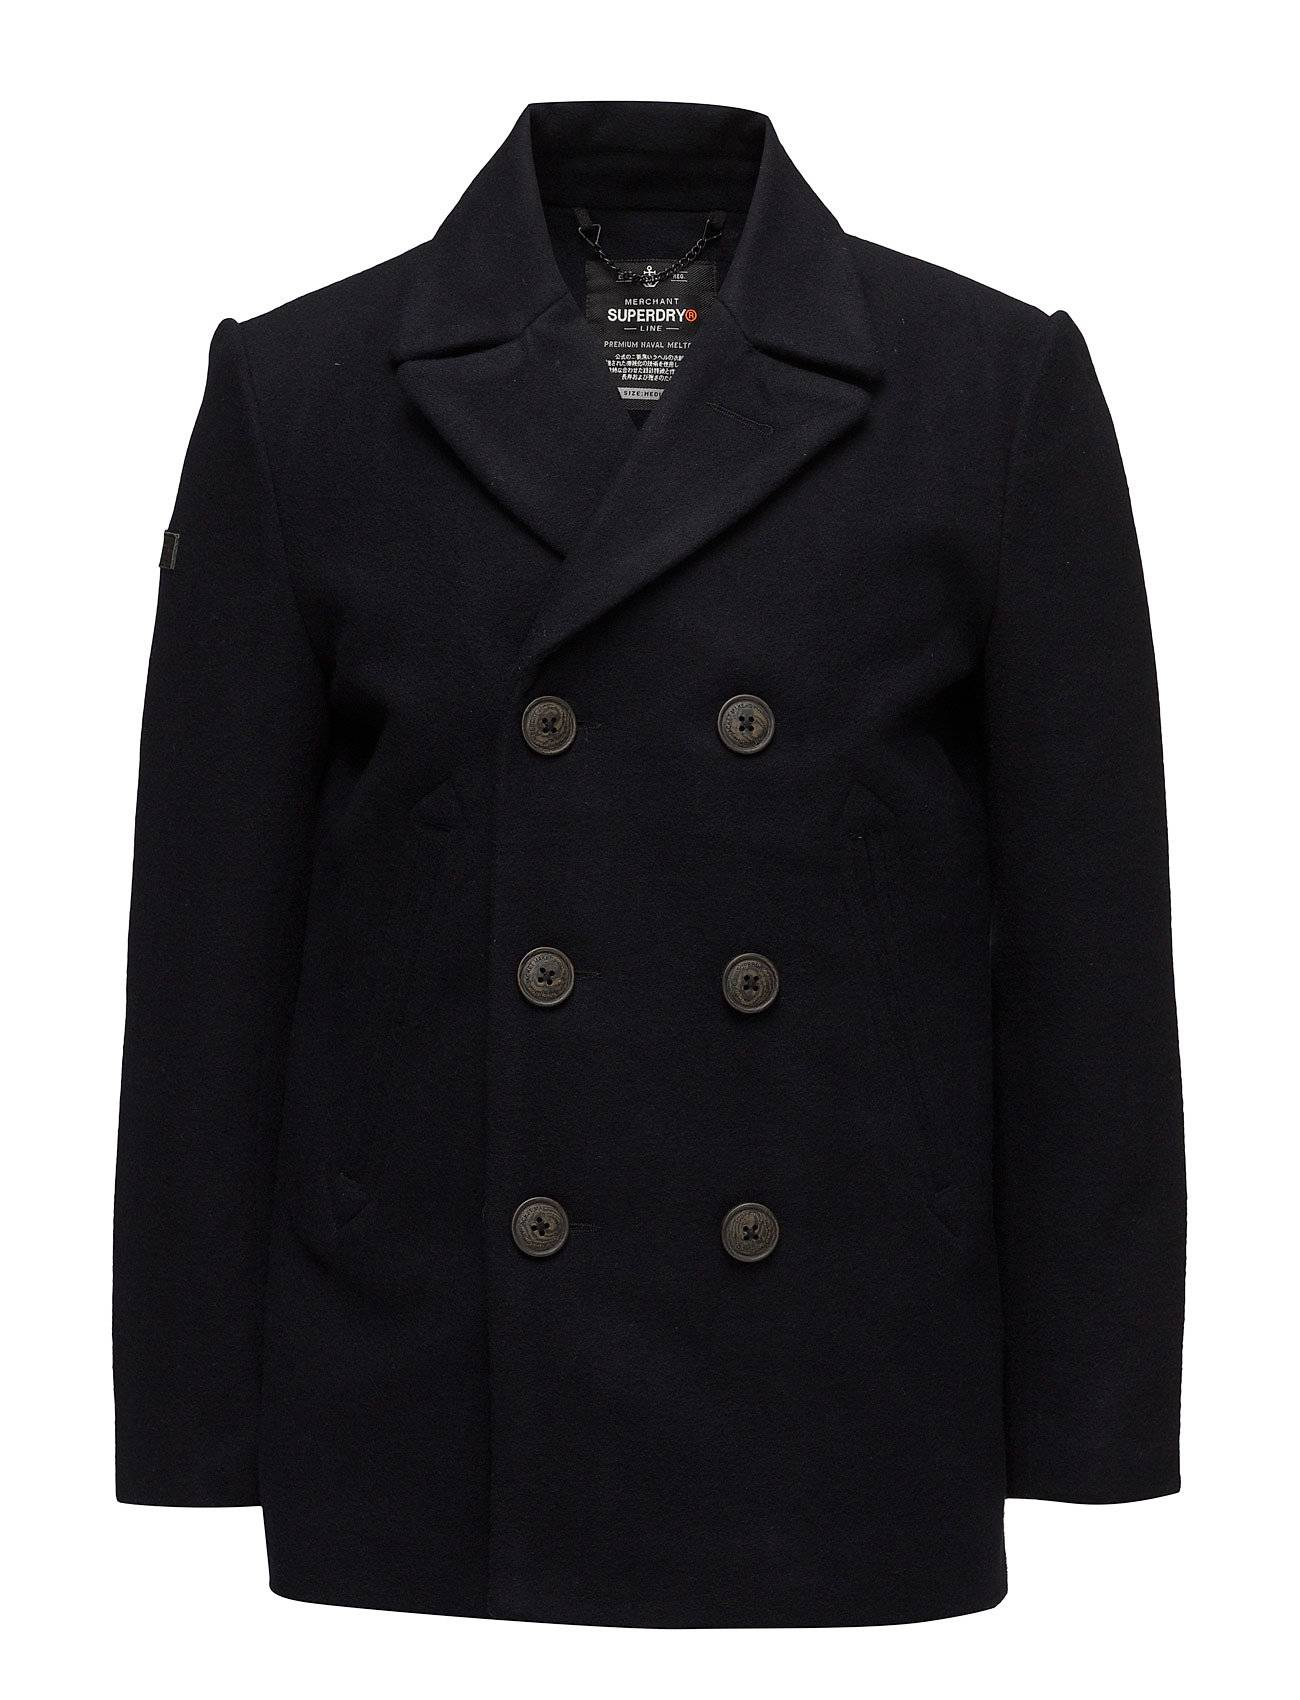 Superdry Rookie Merchant Line Peacoat